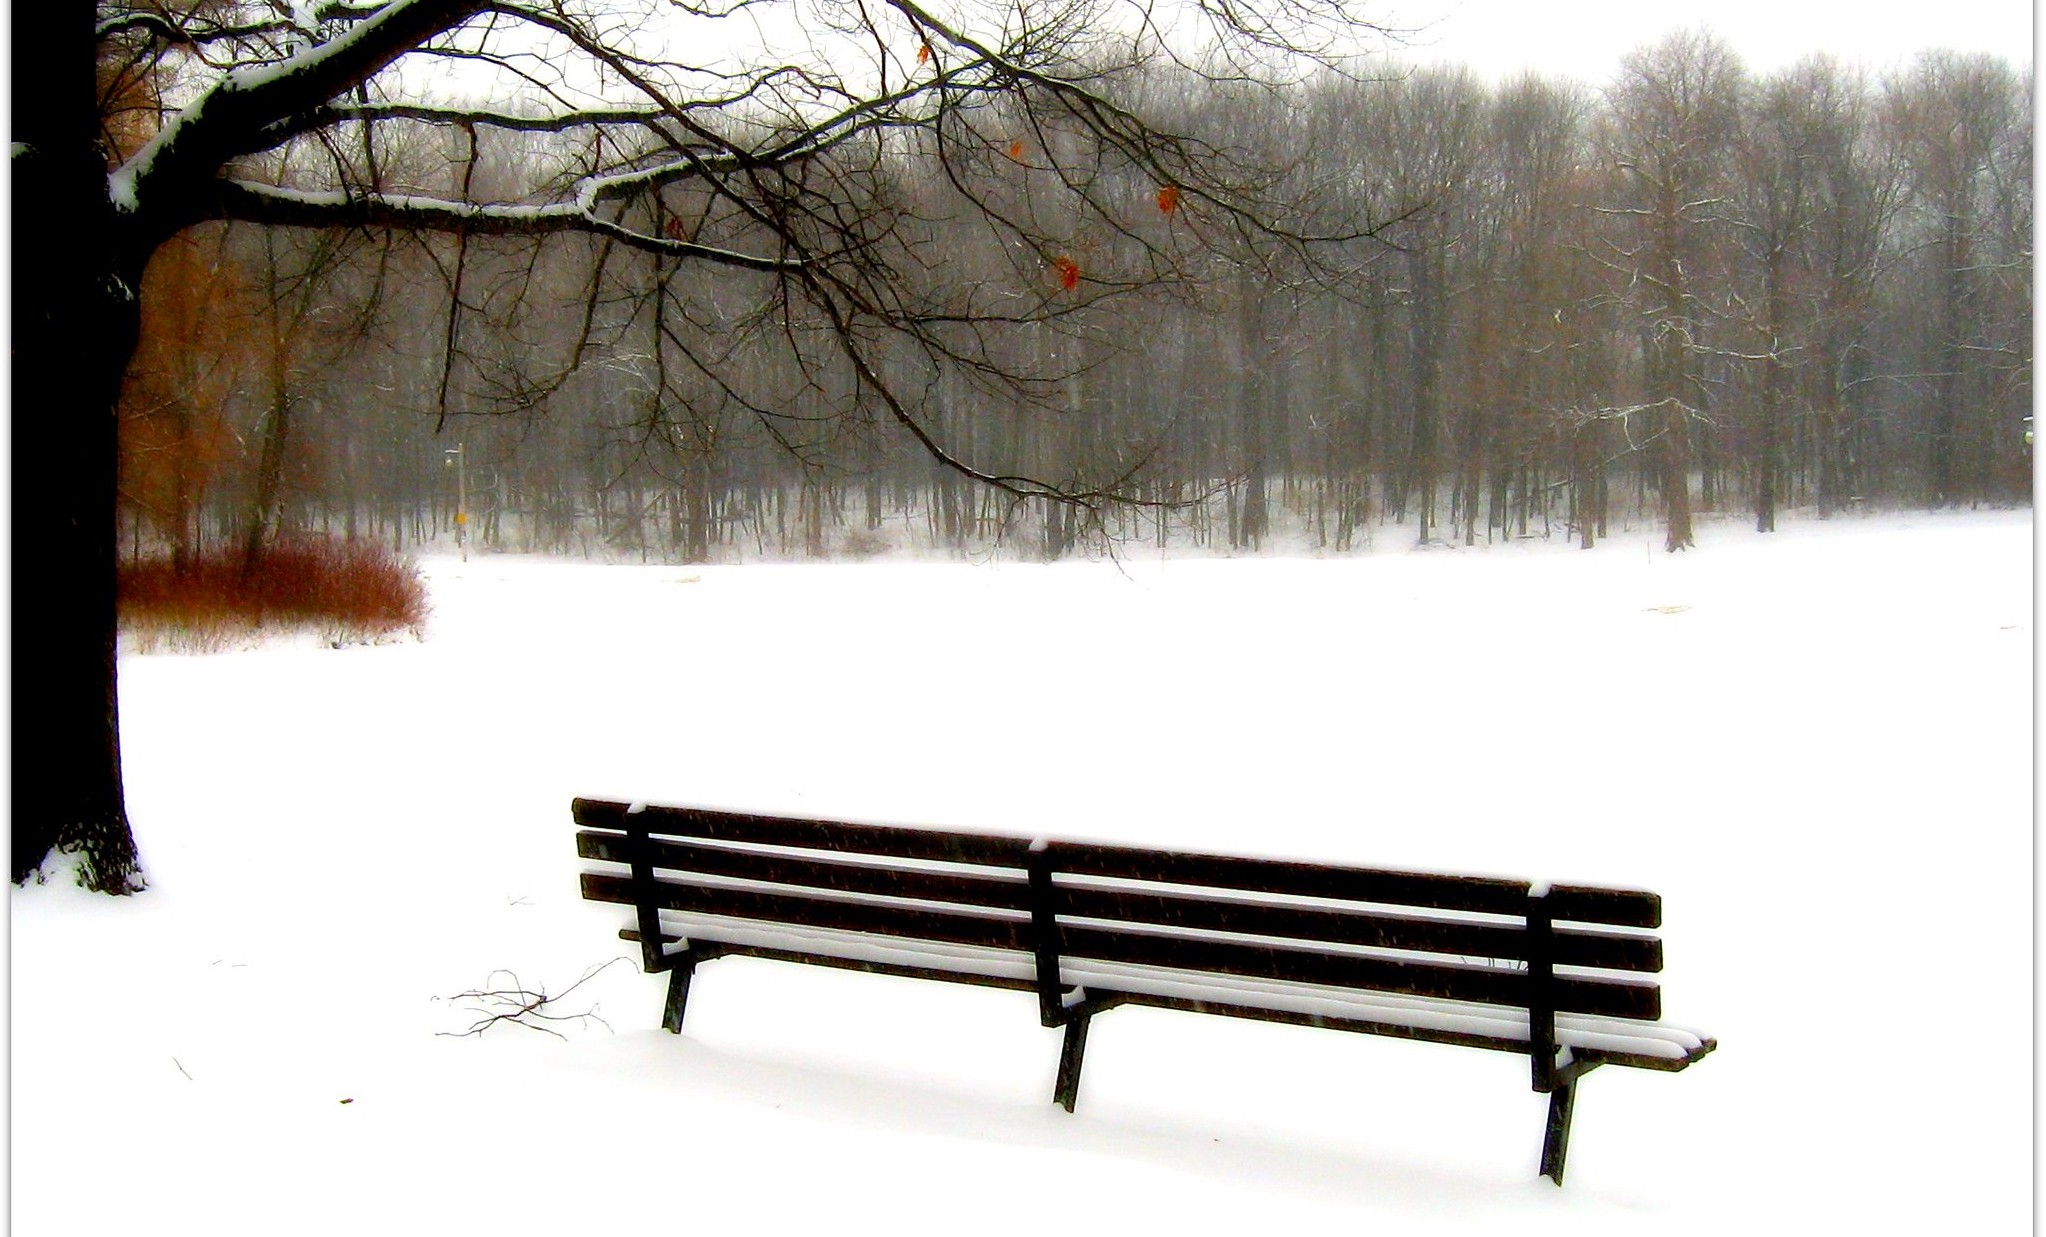 Empty bench in snowy scene with bare trees.